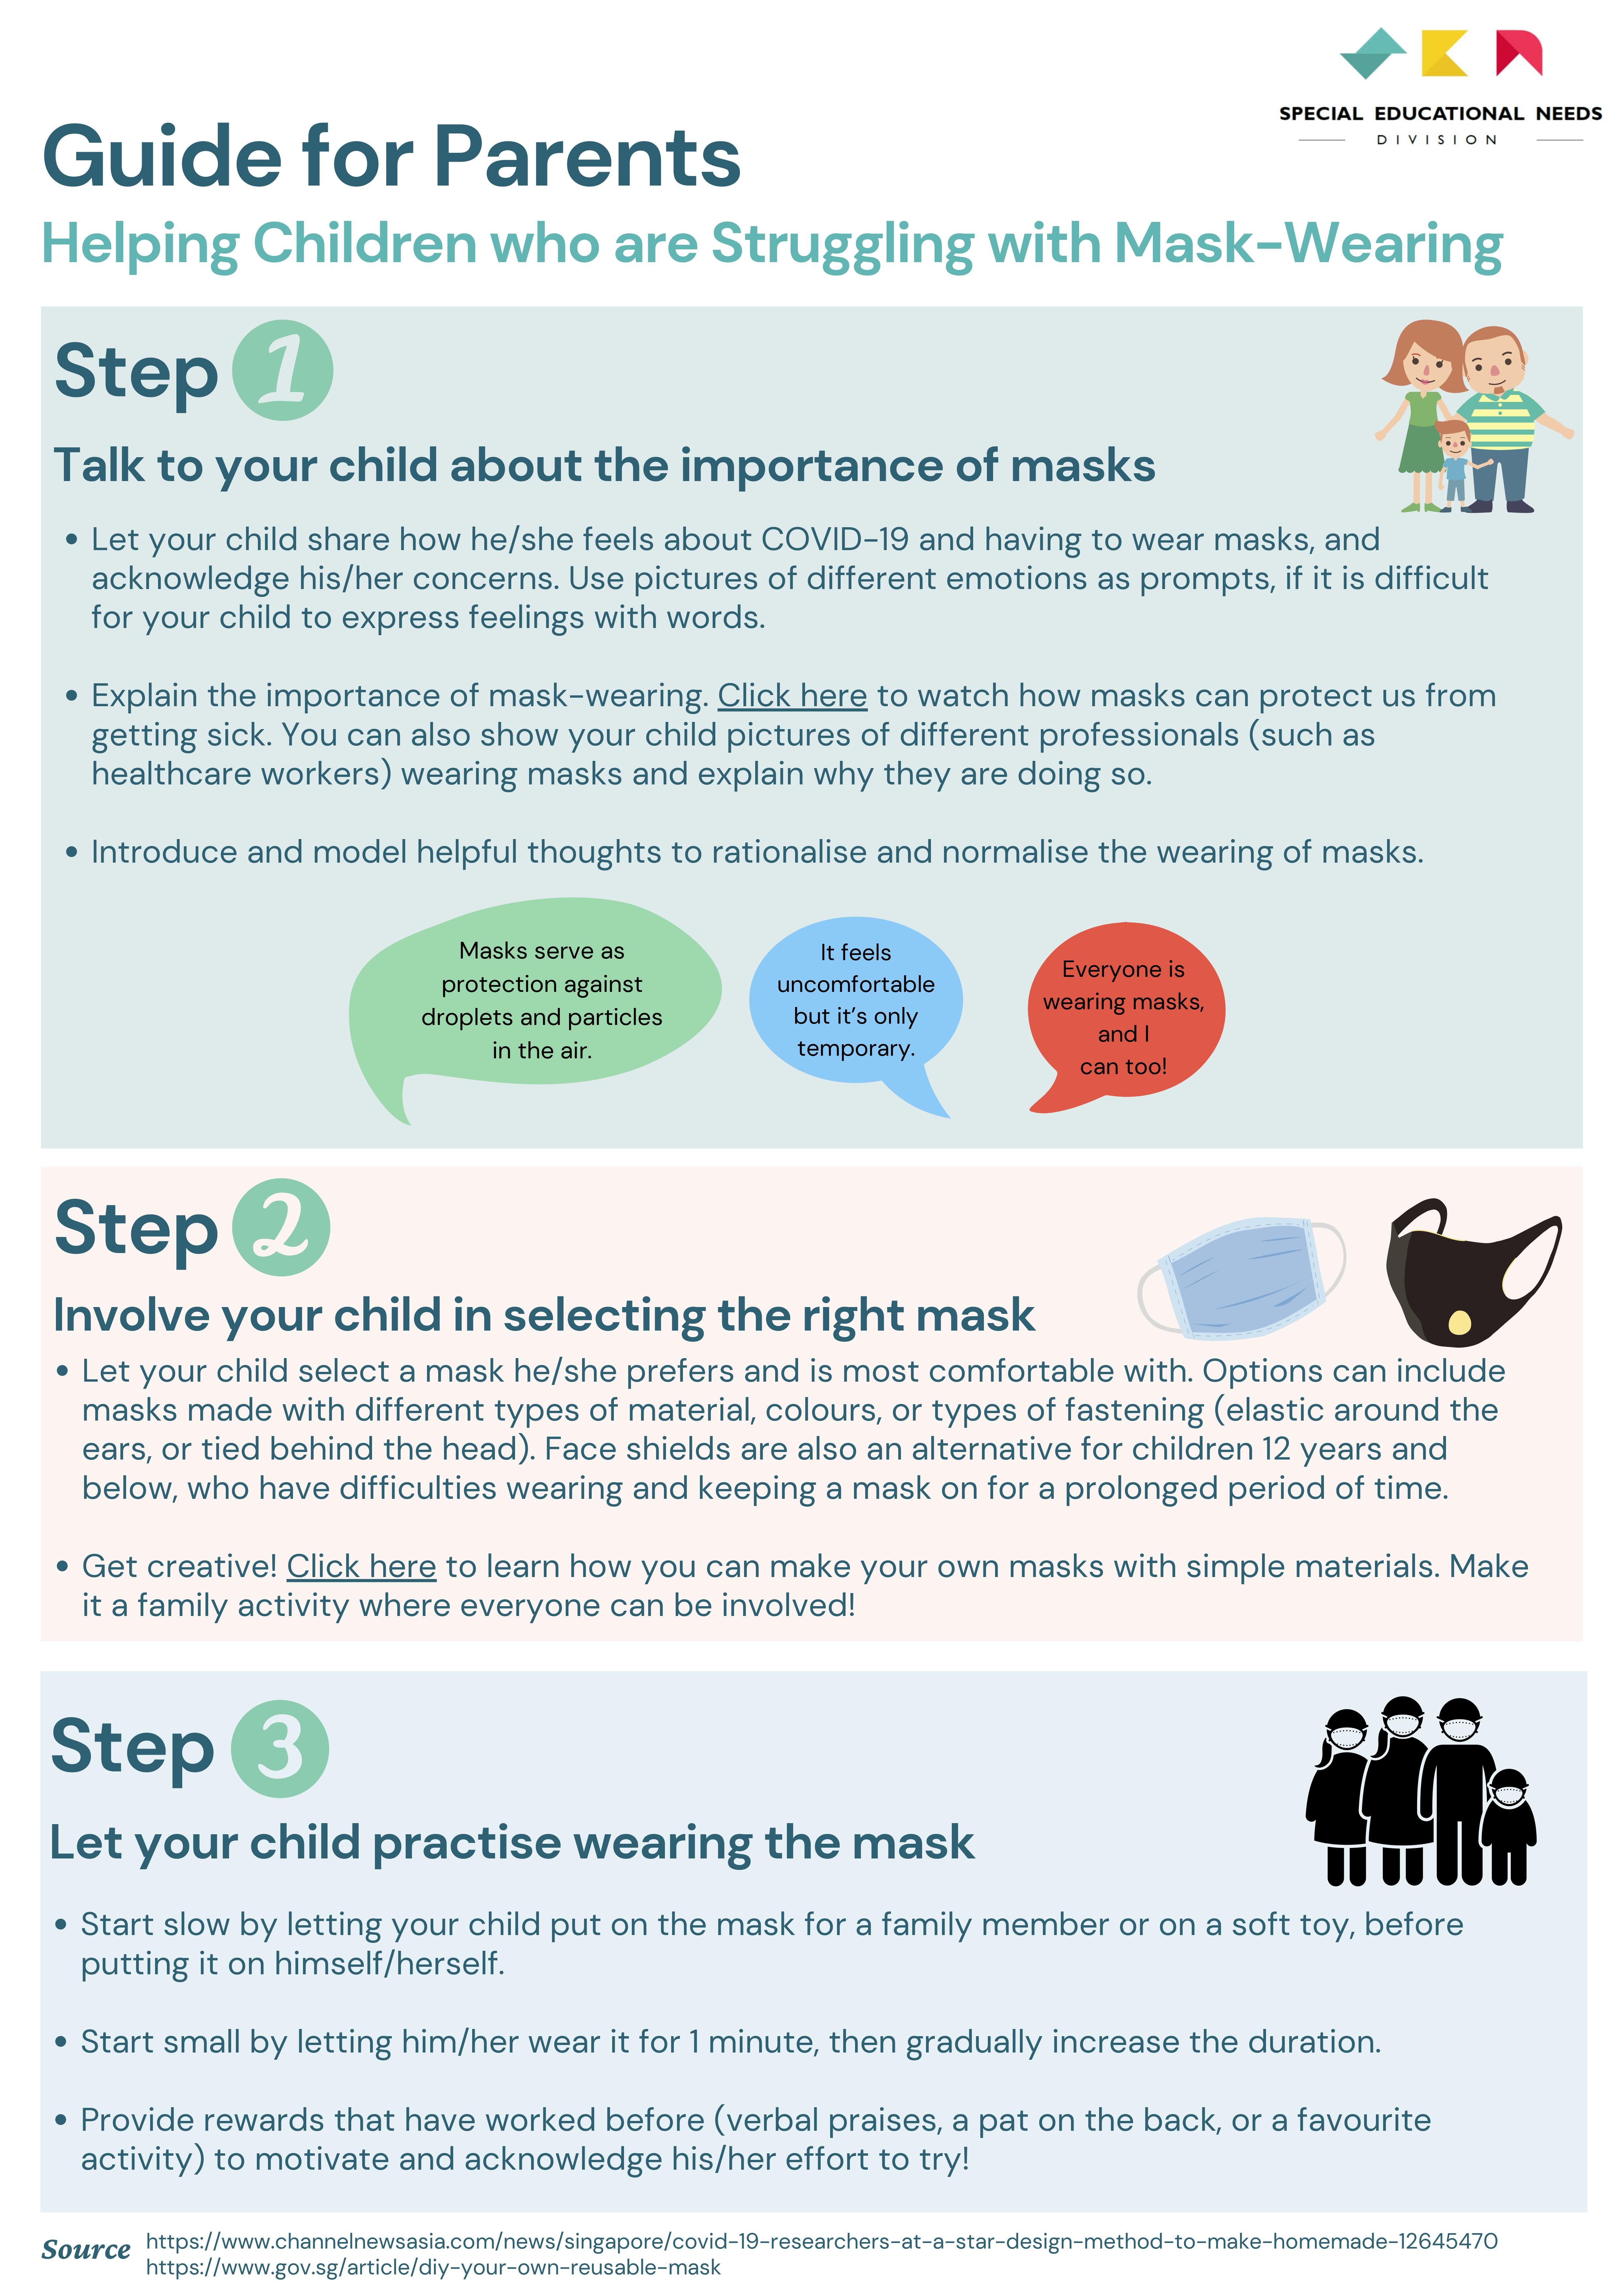 Revised Guide for Parents (Mask Wearing) 1